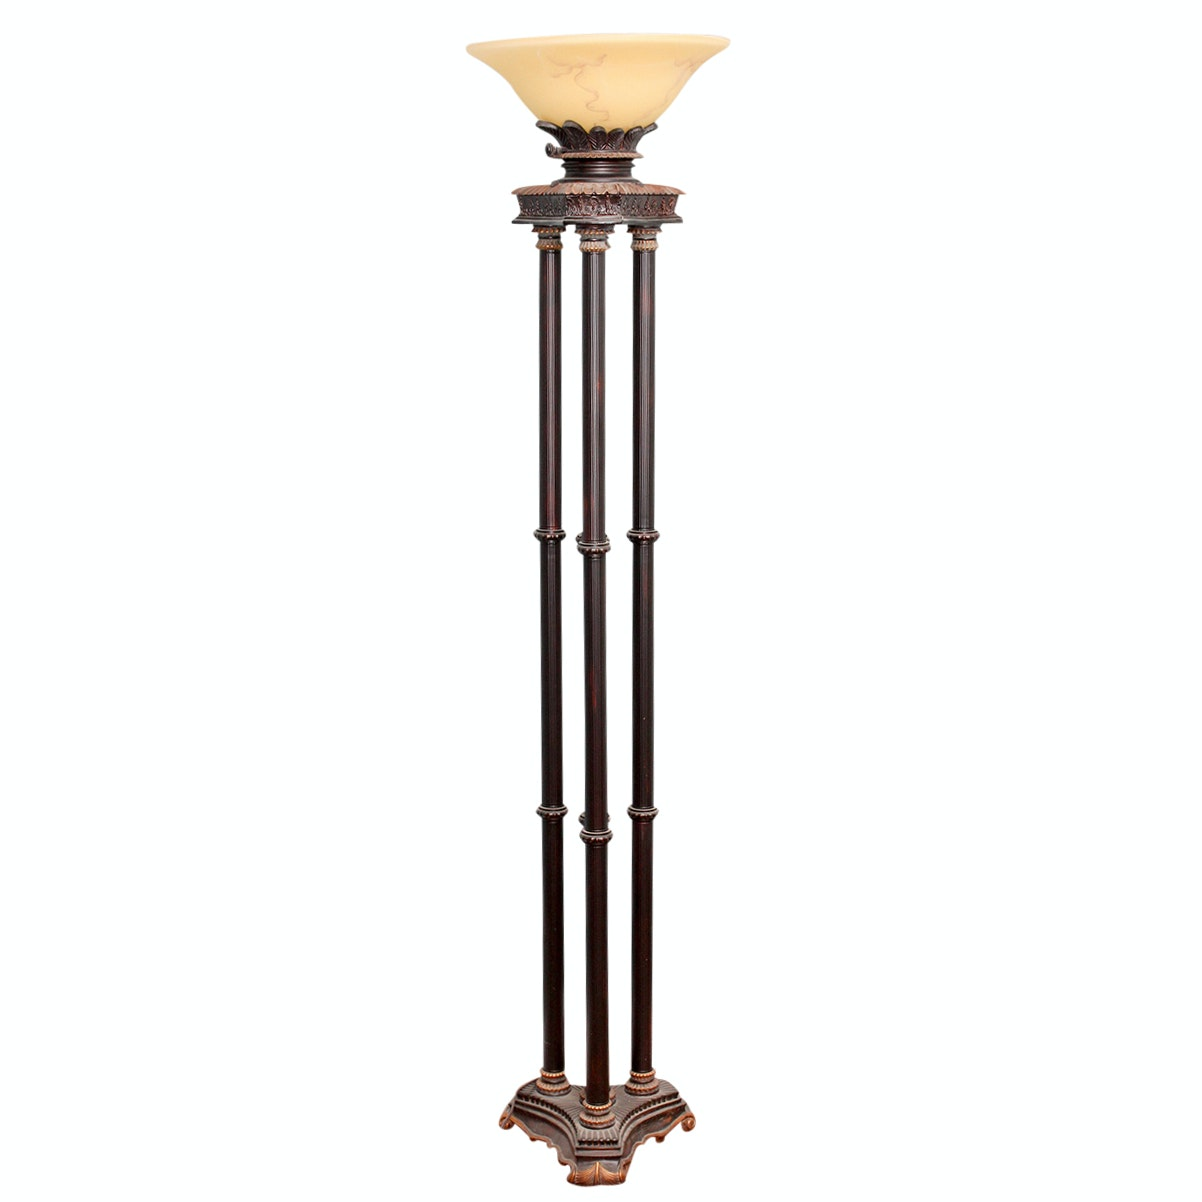 Torchiere Floor Lamp with Oil Rubbed Bronze Tone Columns